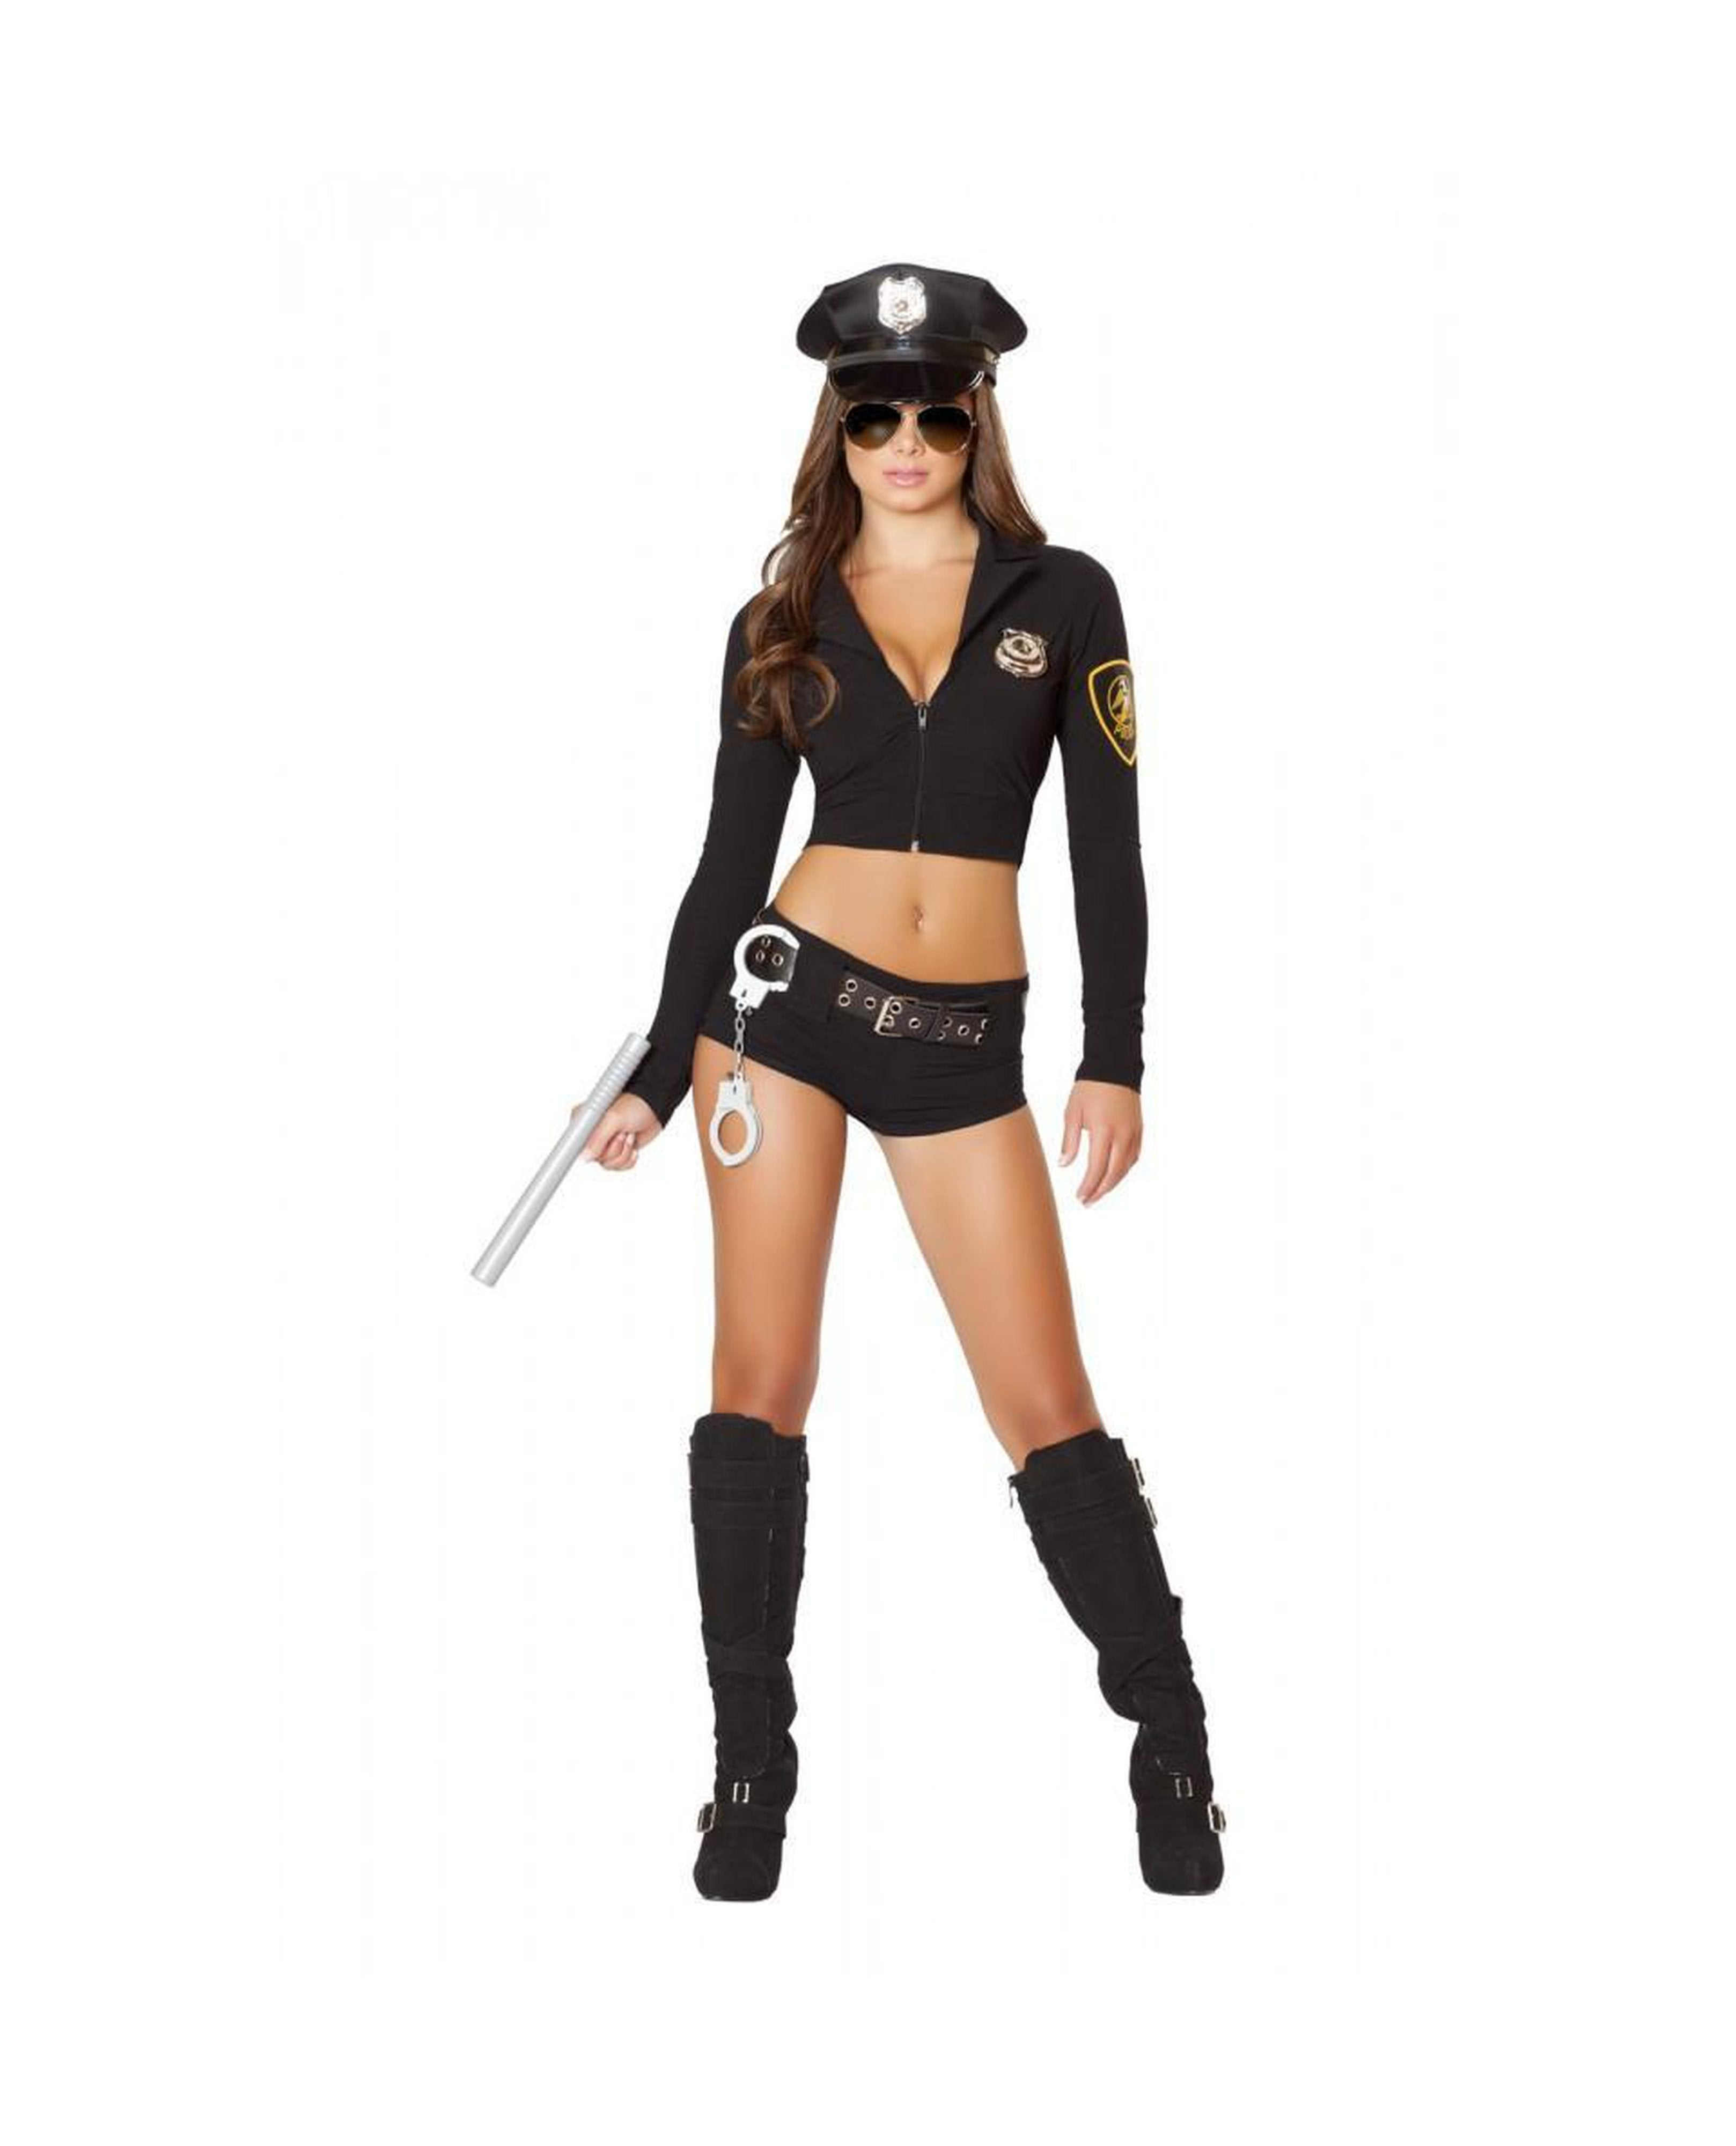 Officer Hottie Costume costumes Color BlackSize S/MNakees